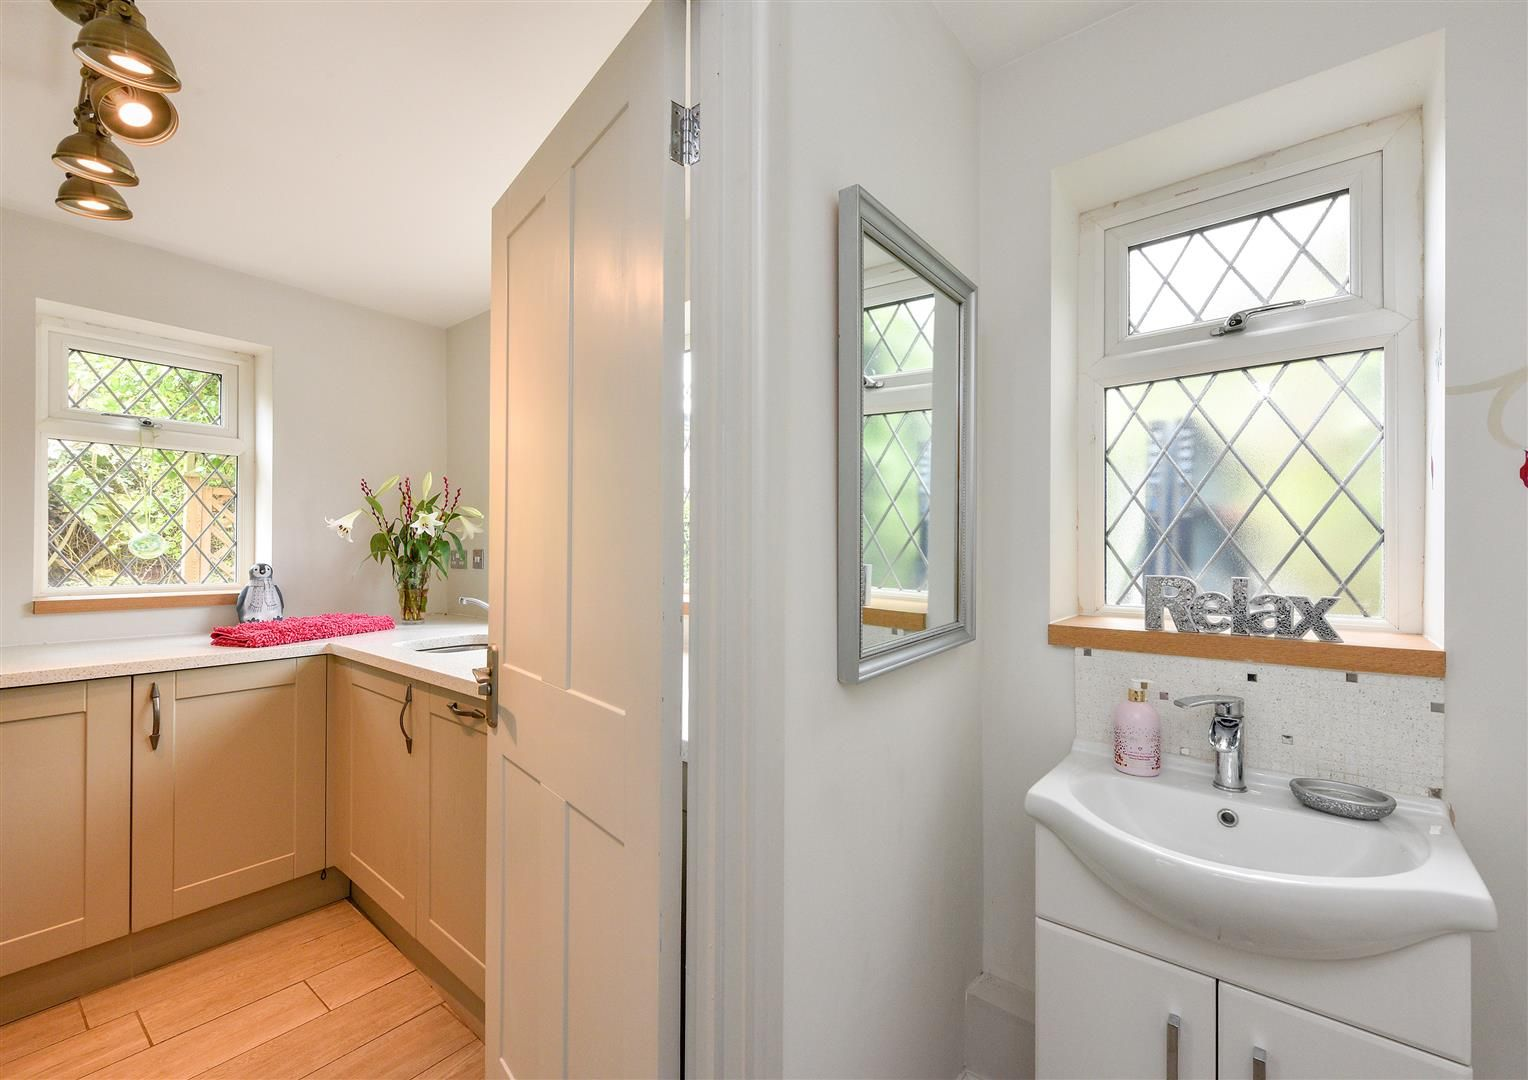 4 bed detached for sale in Swindon  - Property Image 10